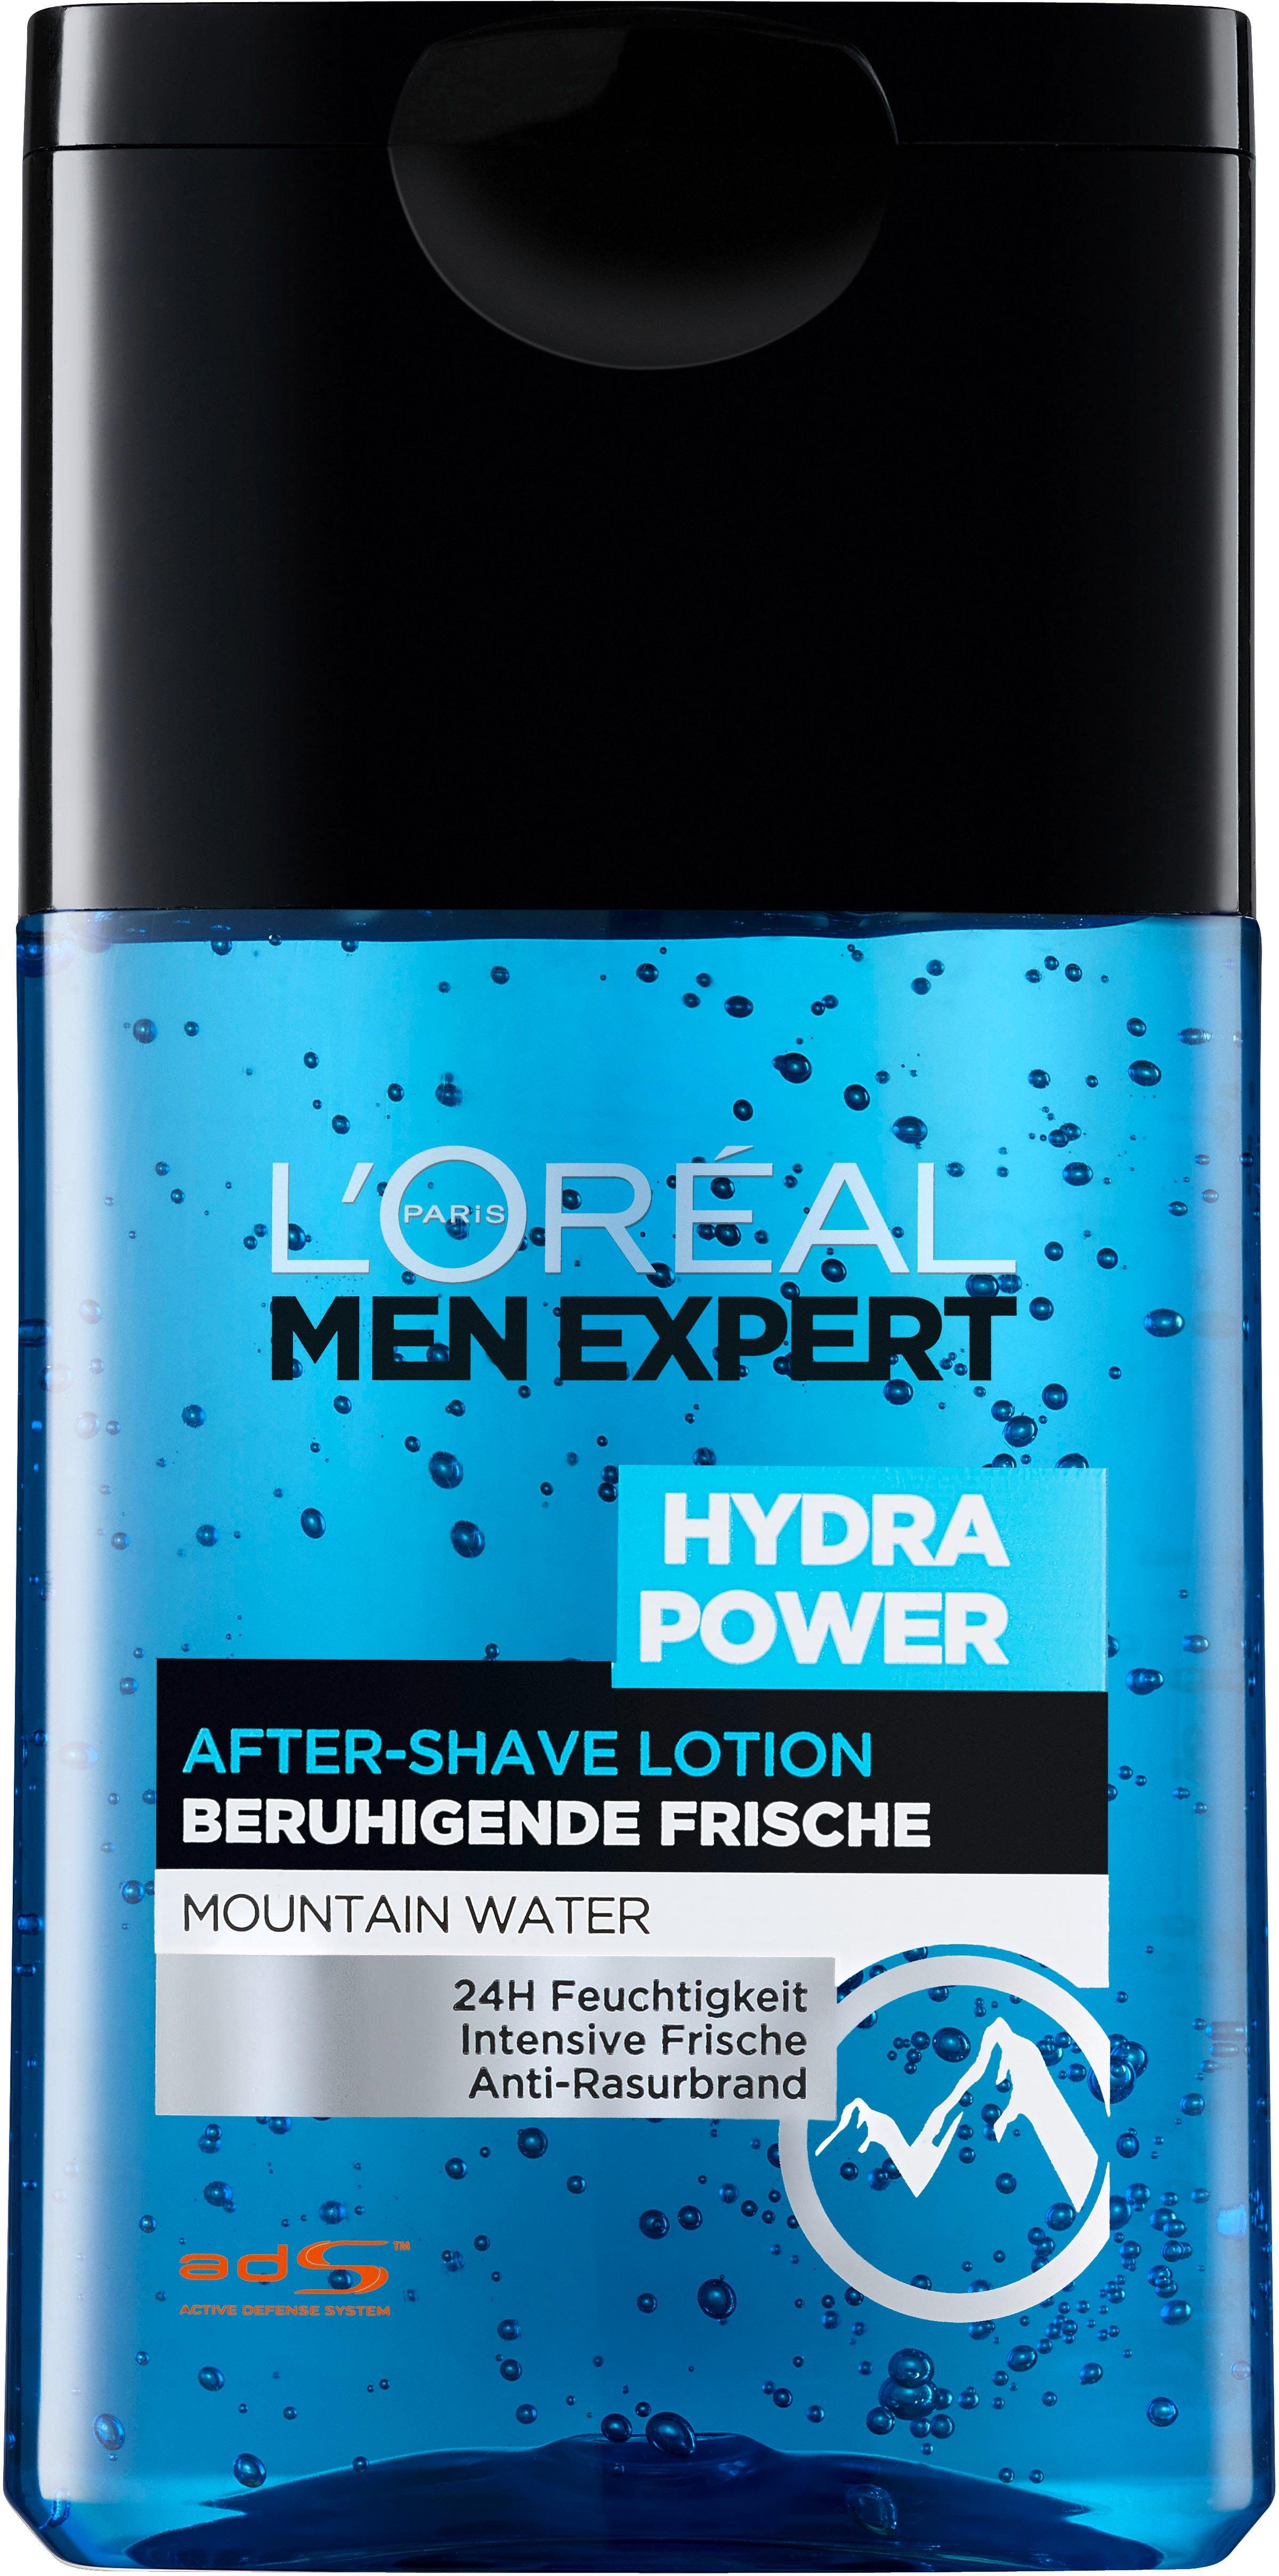 L'Oréal Paris Men Expert, »Hydra Power After Shave Lotion«, Männerpflege